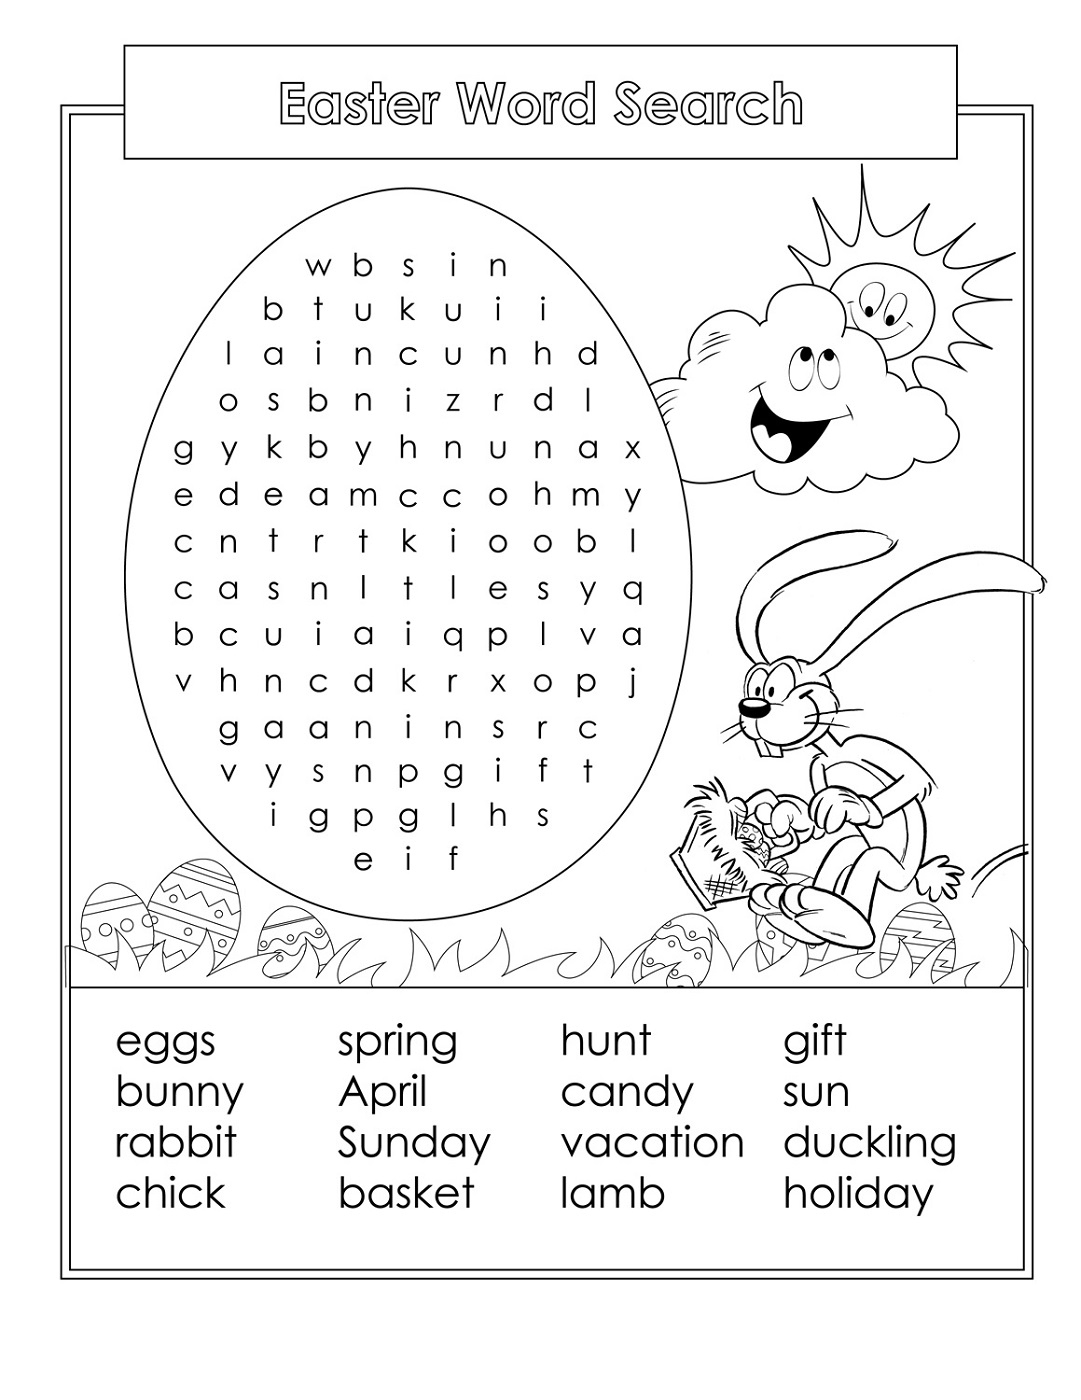 Easter Word Search For Kids | Printable Shelter